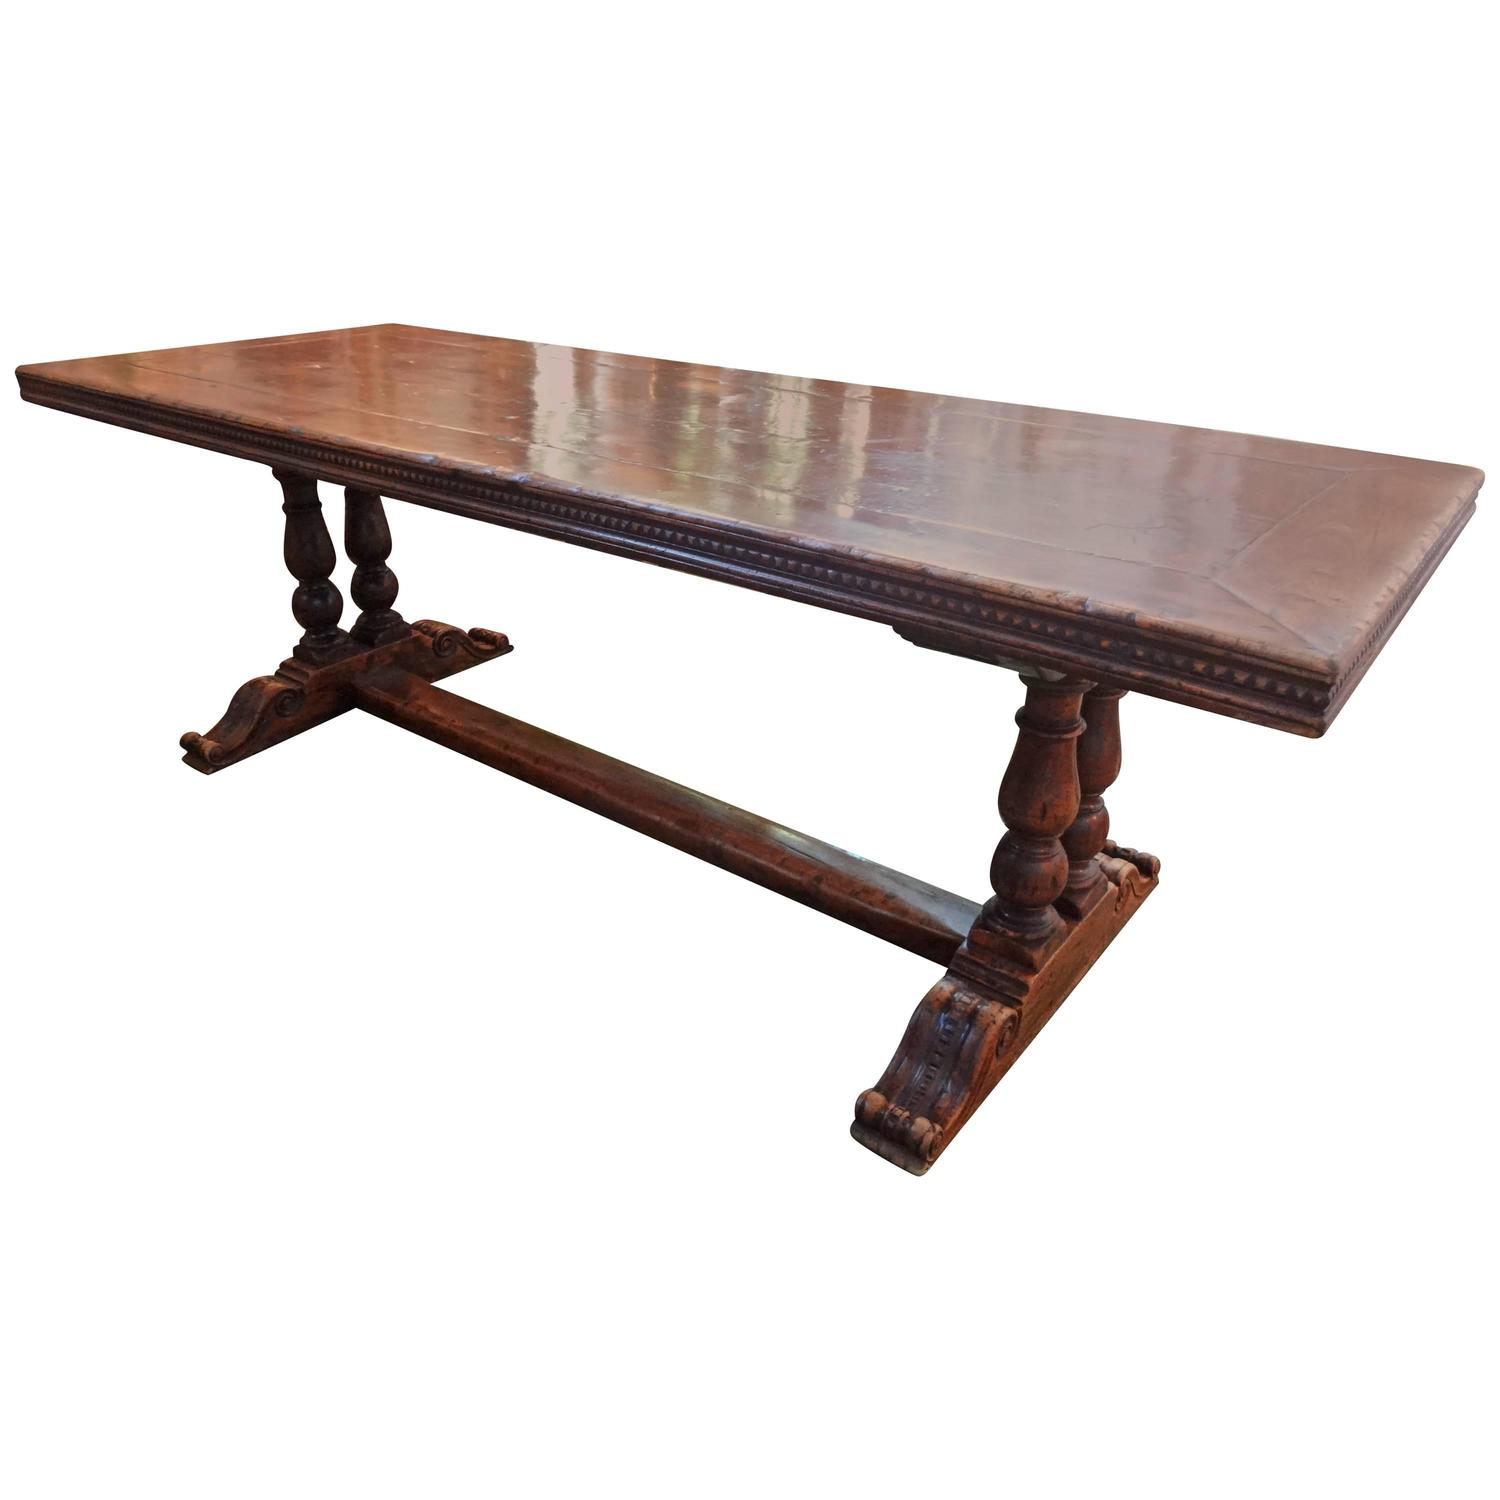 Antique french walnut trestle dining table for sale at 1stdibs Trestle dining table